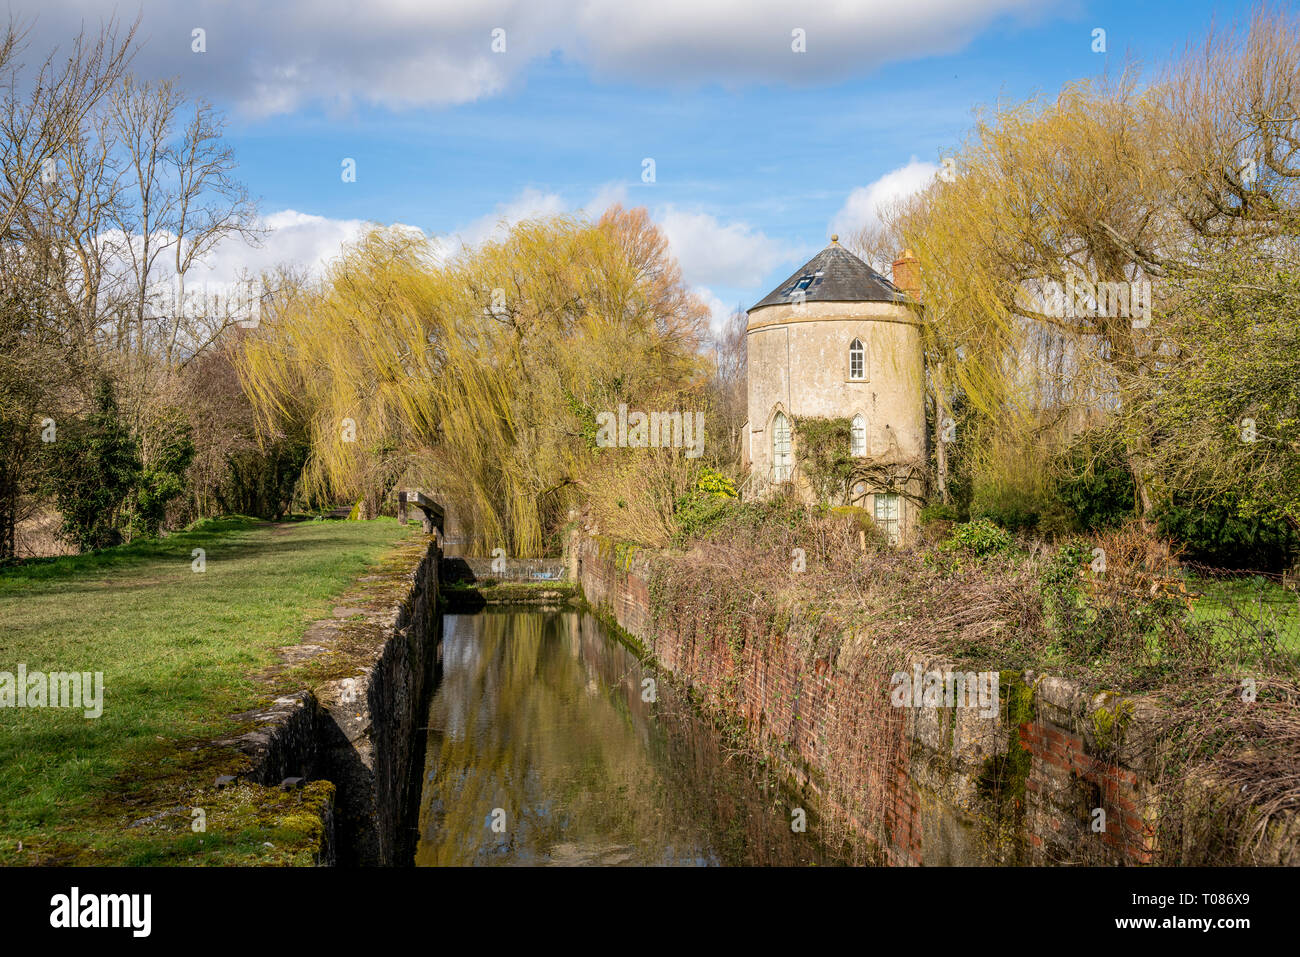 View of the Cerney Wick lock and Roundhouse on the Severn - Thames Canal, United Kingdom - Stock Image